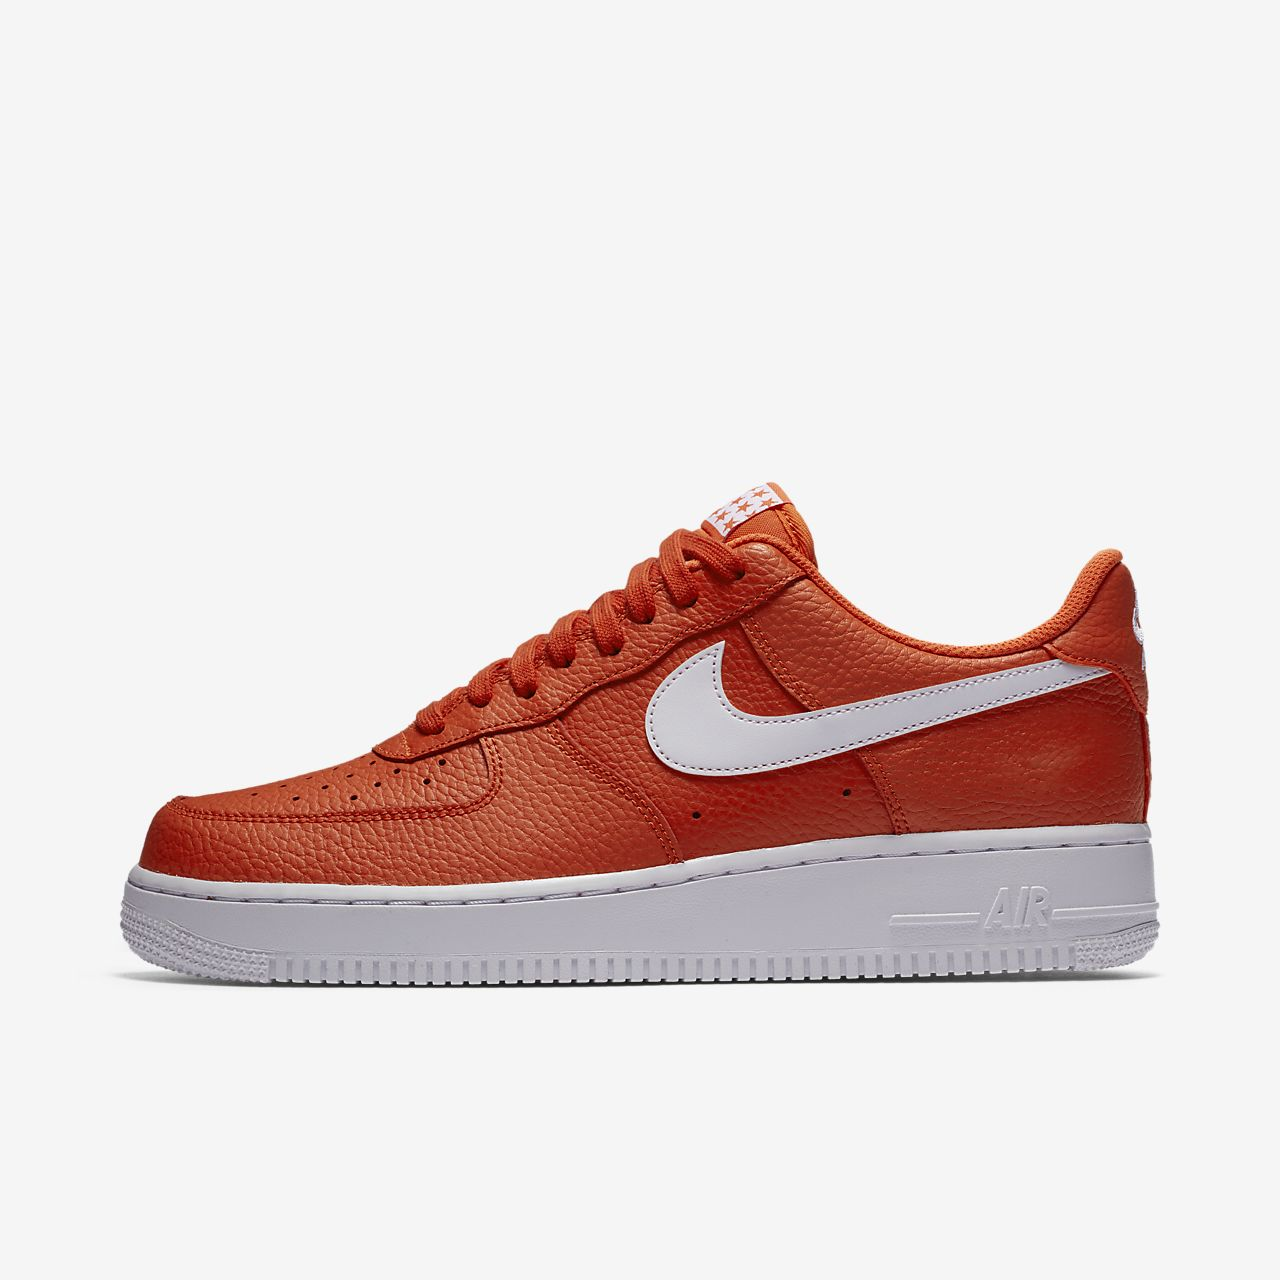 new arrival d5ae1 2f077 ... Chaussure Nike Air Force 1 07 pour Homme